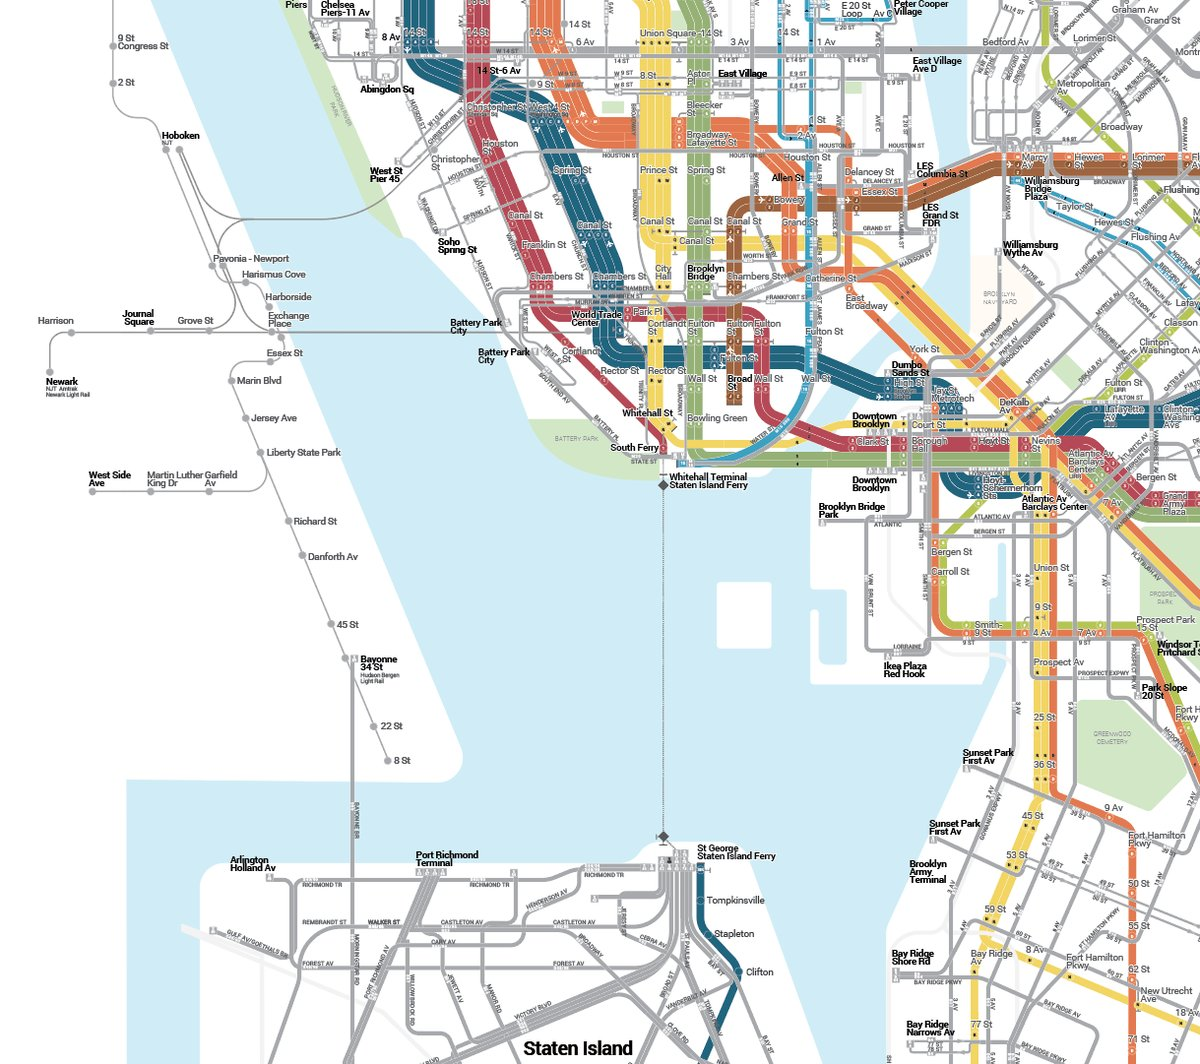 The Bullet Map: Comprehensive Transit